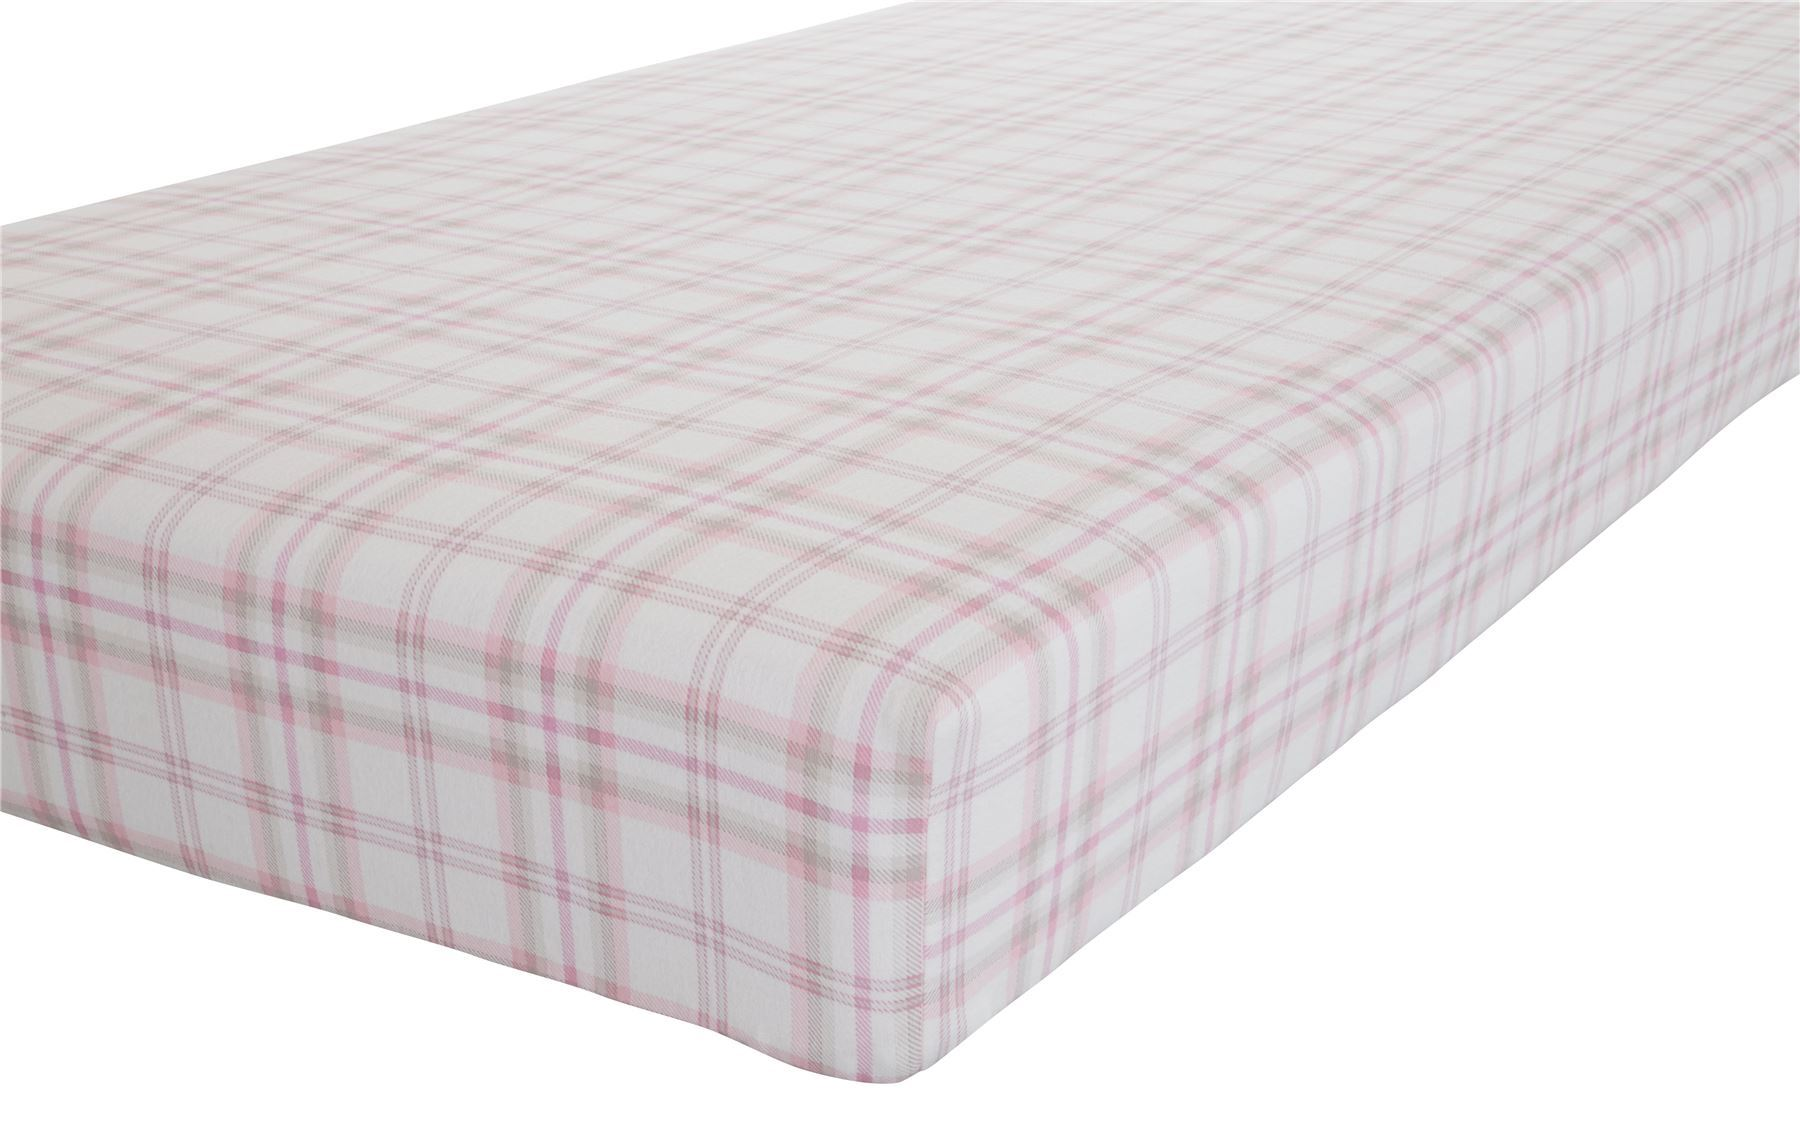 Flannelette Sheets Sale Canterbury Brushed Flannelette Fitted Sheet 100 Cotton